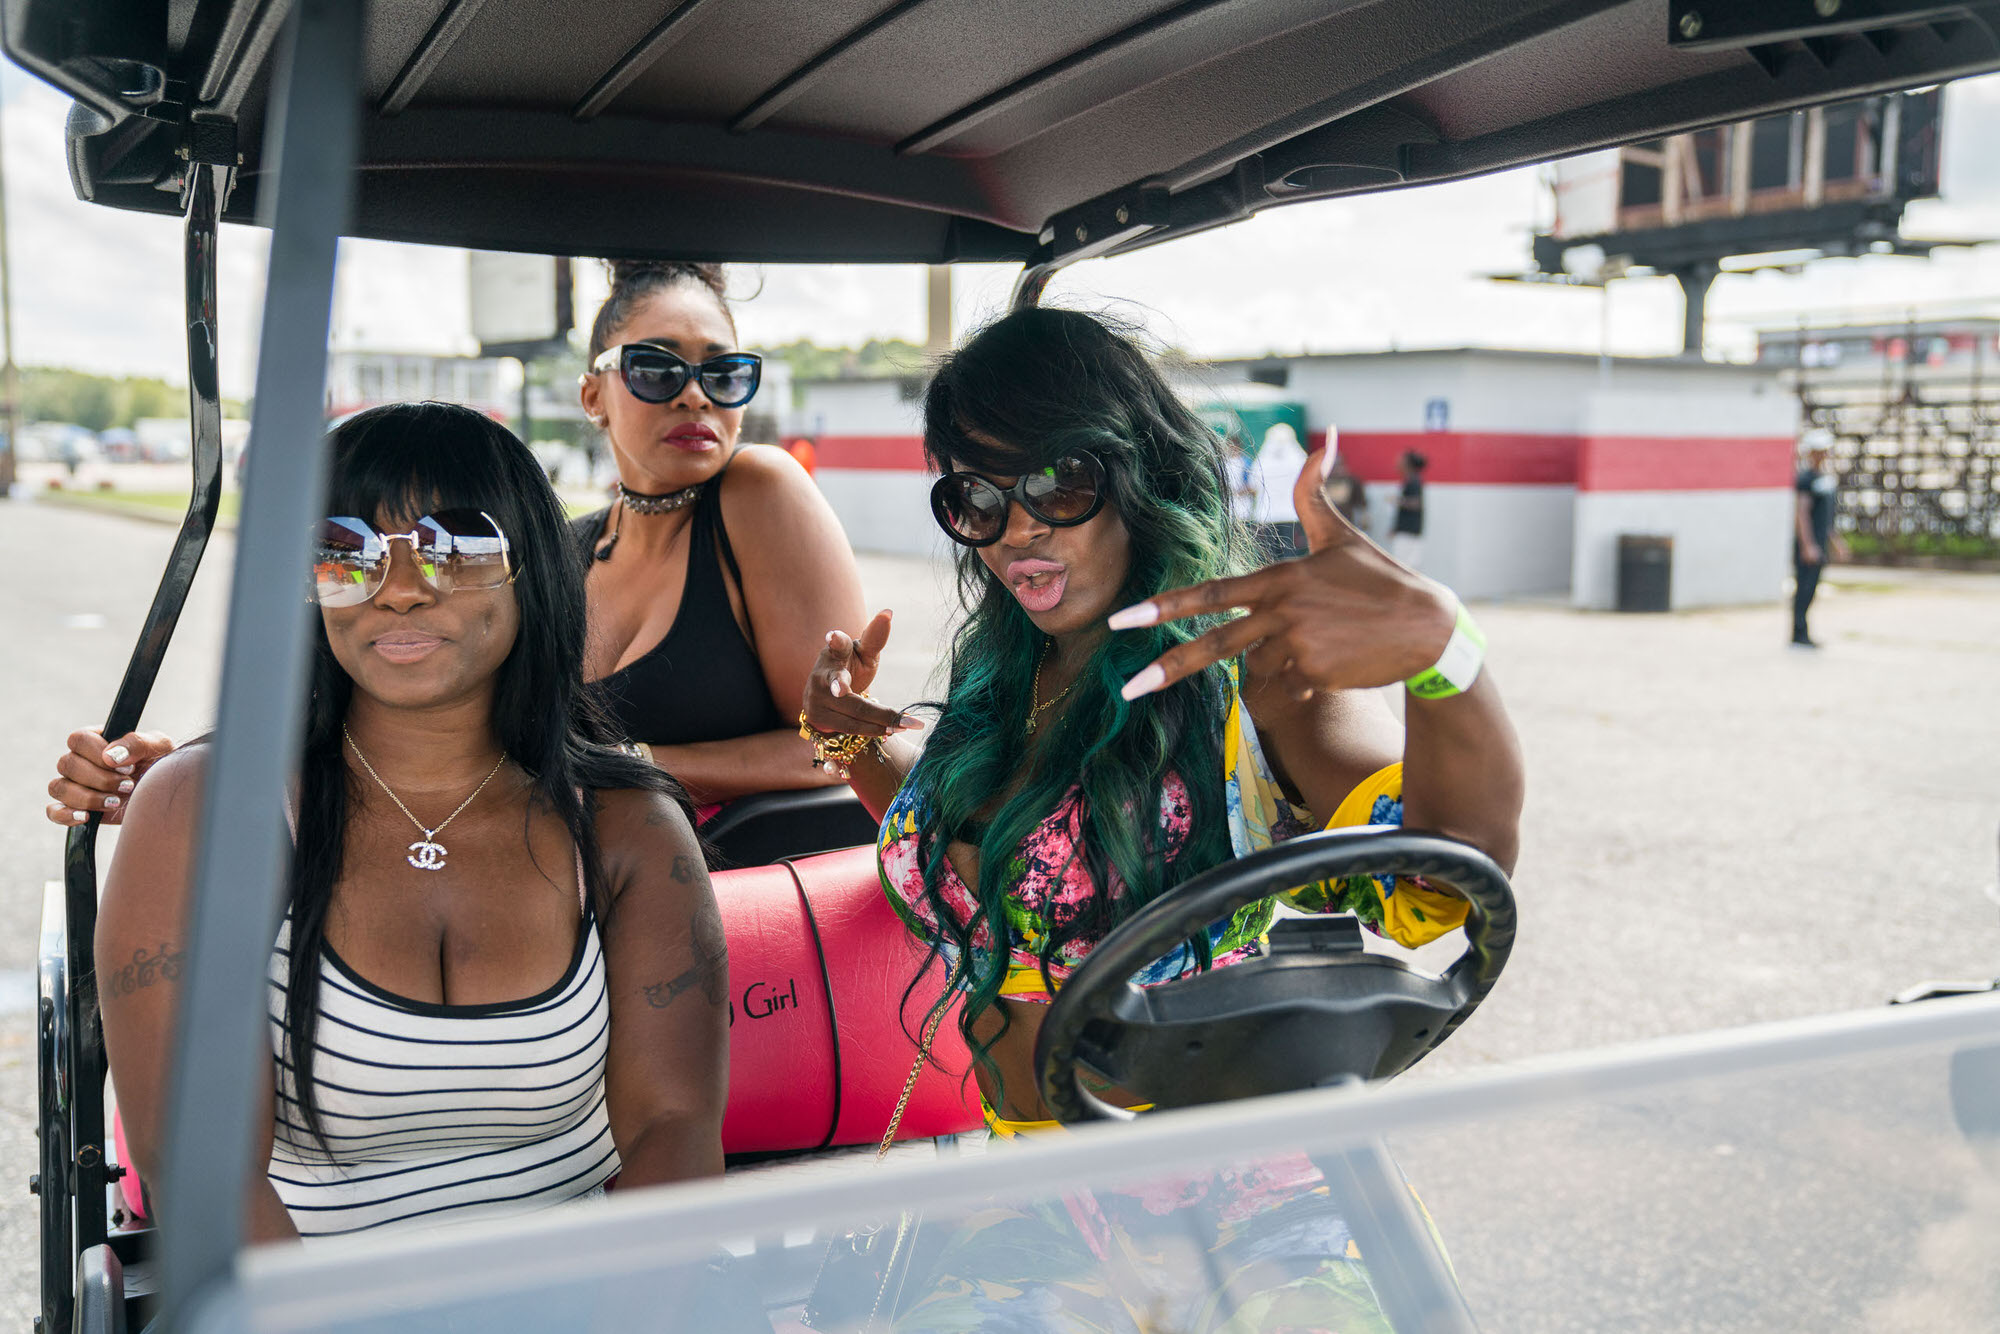 Golf Kart ladies at Fast & Flashy DONK event at Darlington Dragway